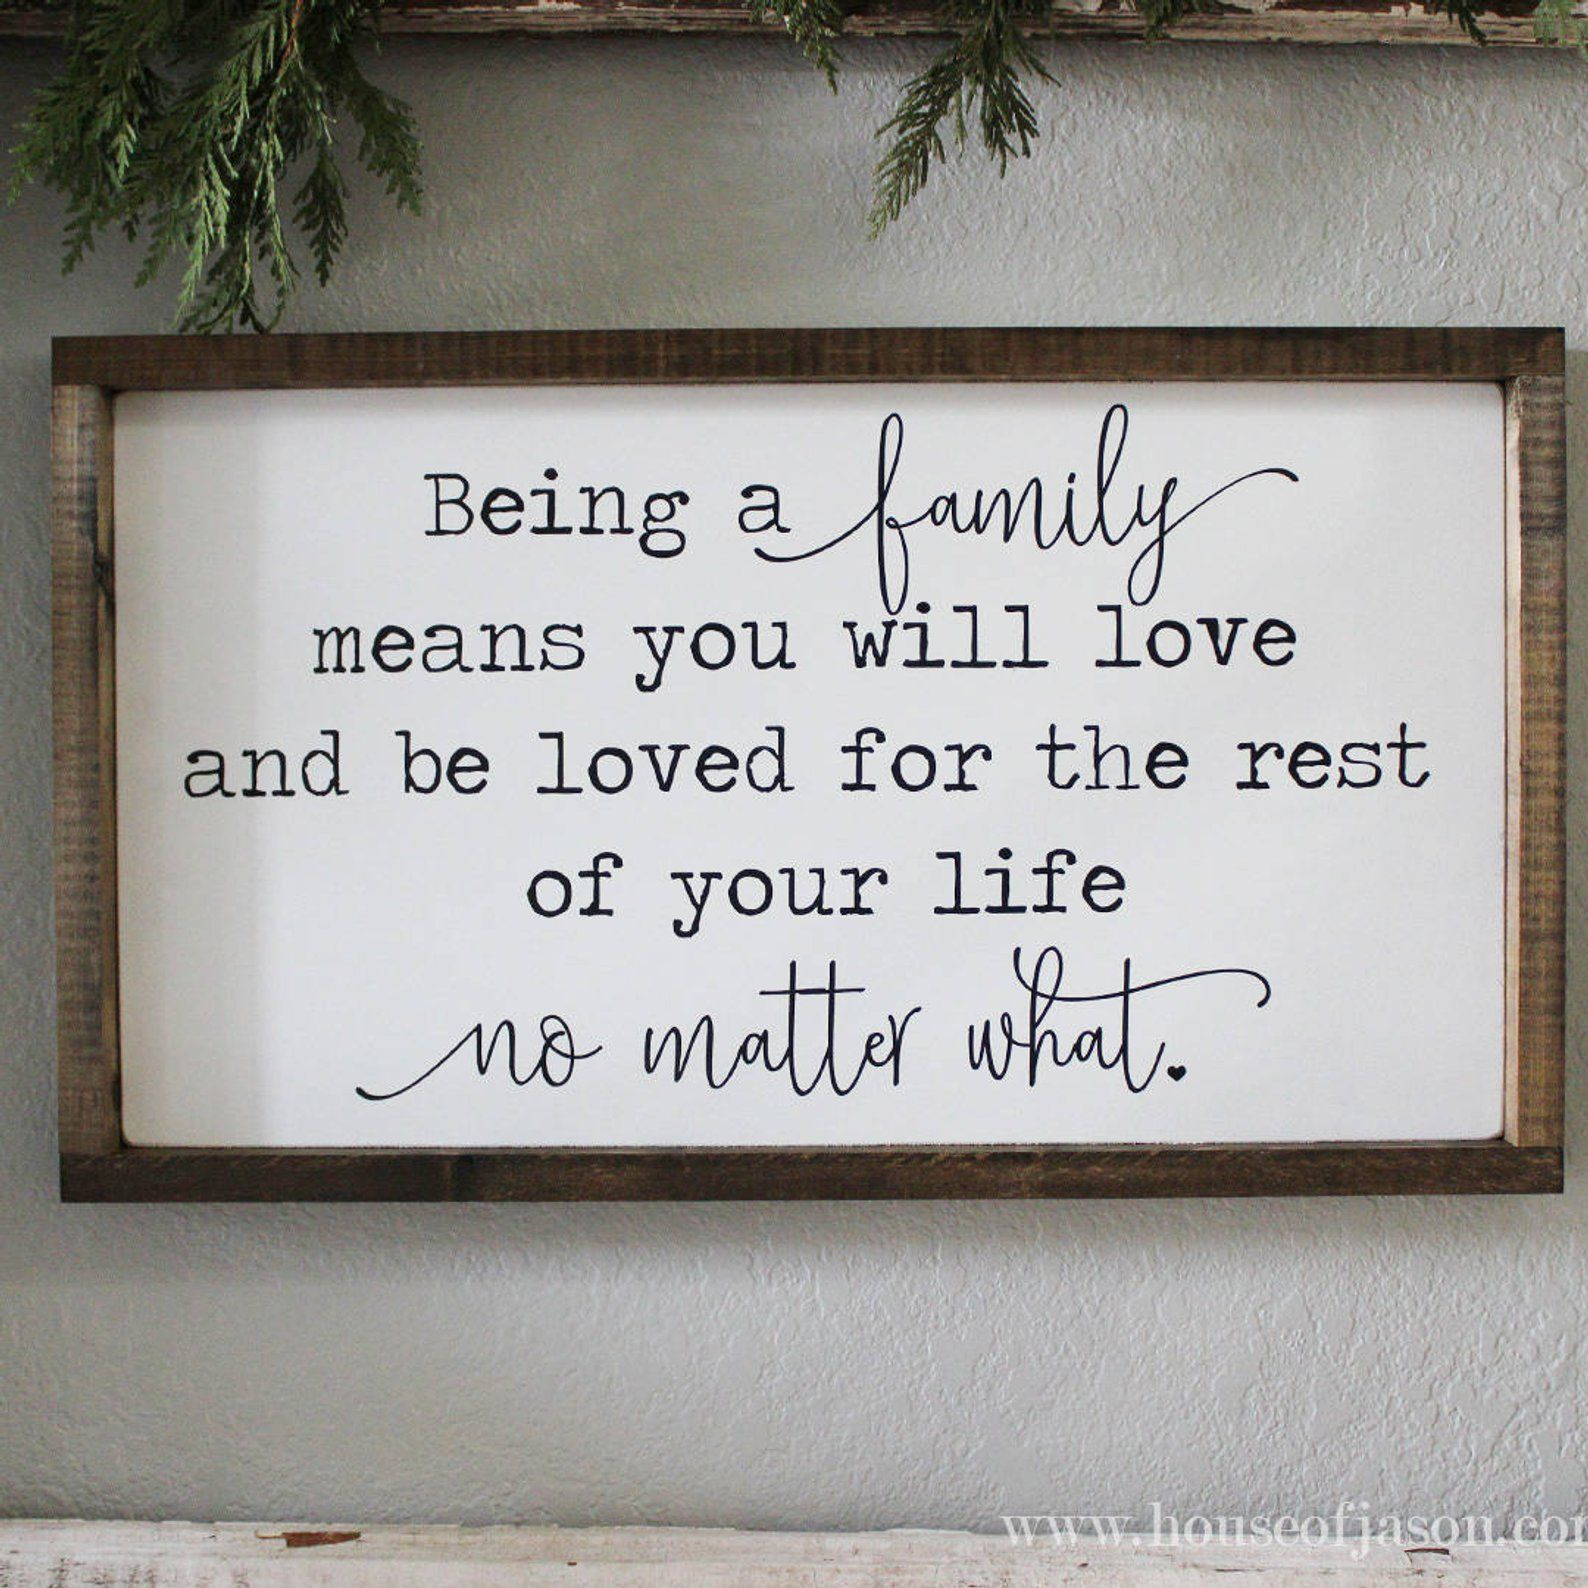 Family Wood Sign Grey Black And White Home Decor Housewares Family Is Everything Quote 23 00 Via Etsy Family Wood Signs Wood Signs White Home Decor